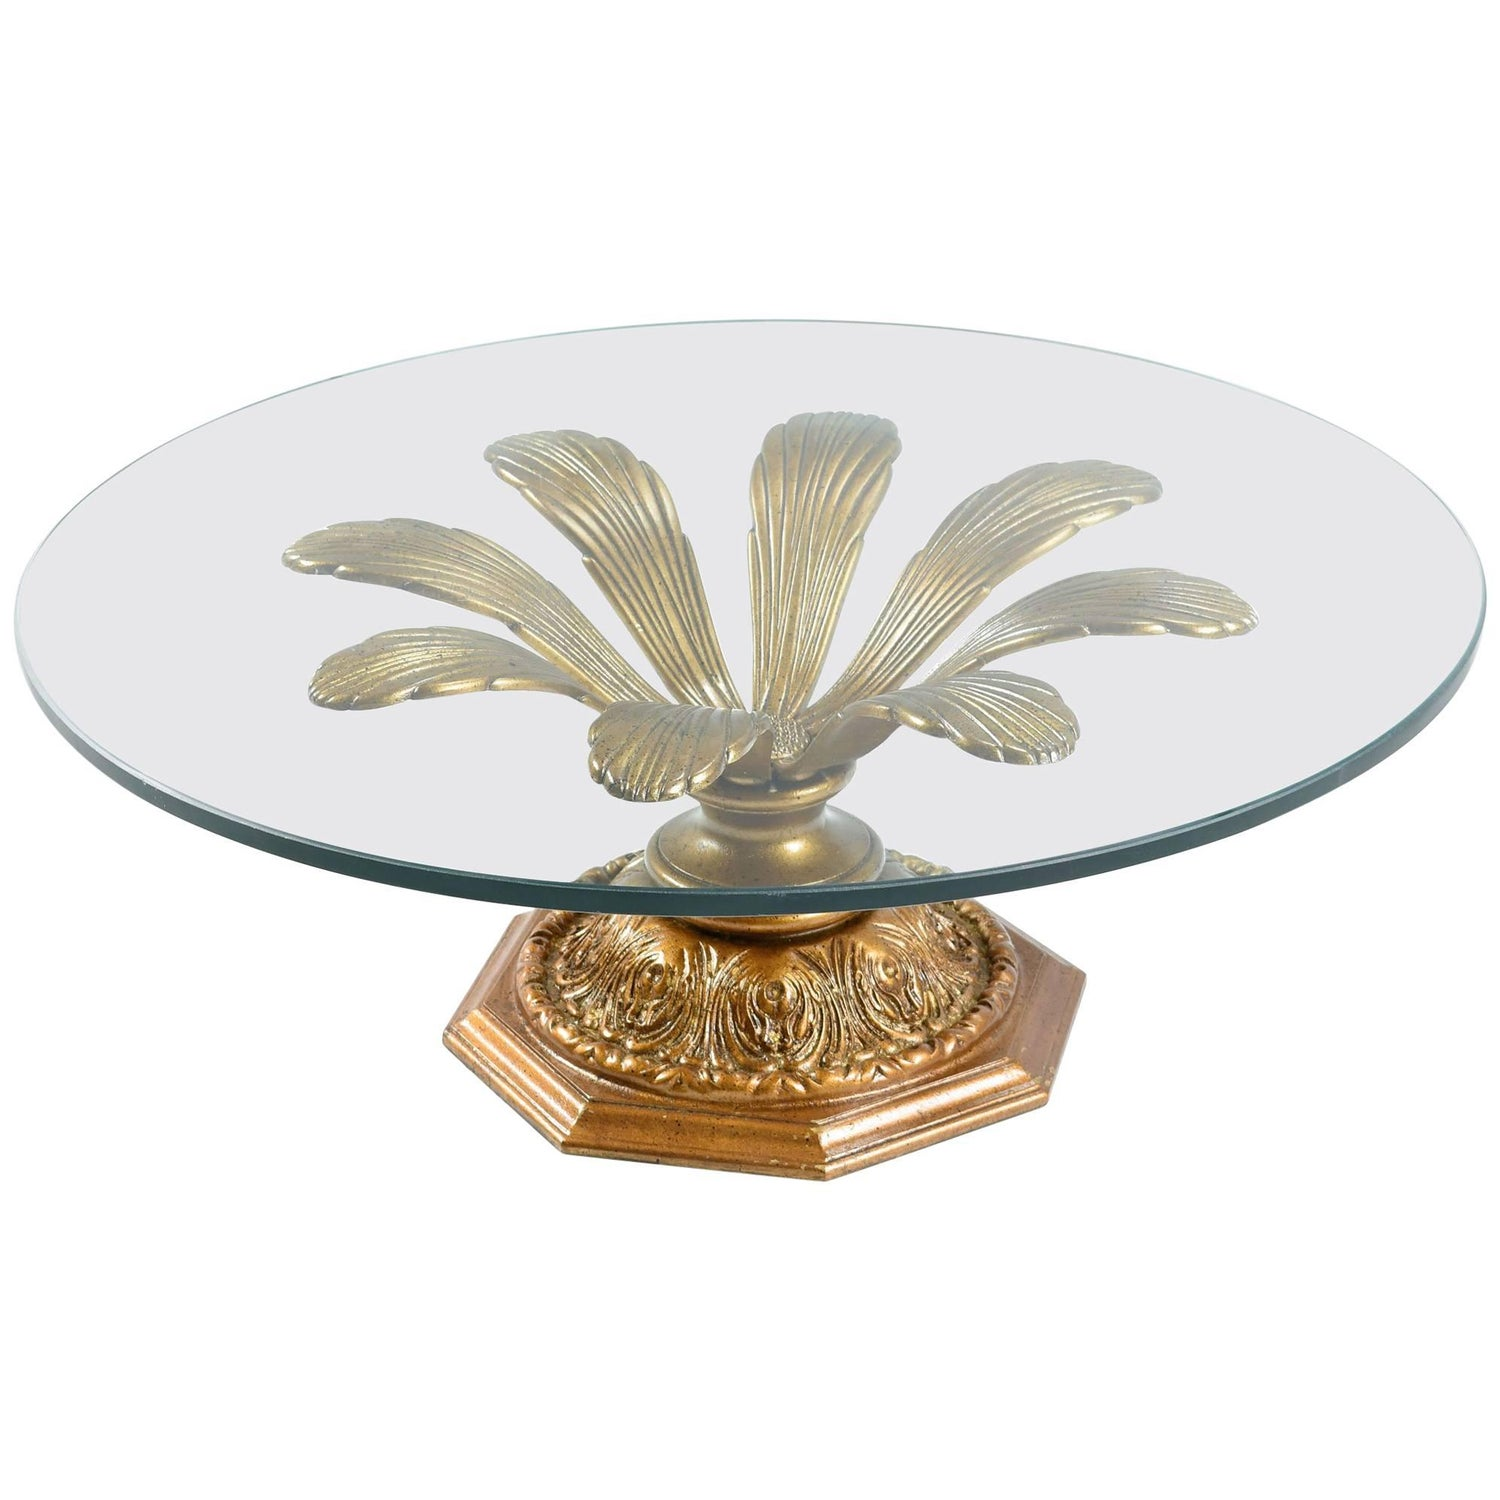 Hollywood Regency Coffee And Cocktail Tables 540 For Sale At 1stdibs # Muebles Curvasa